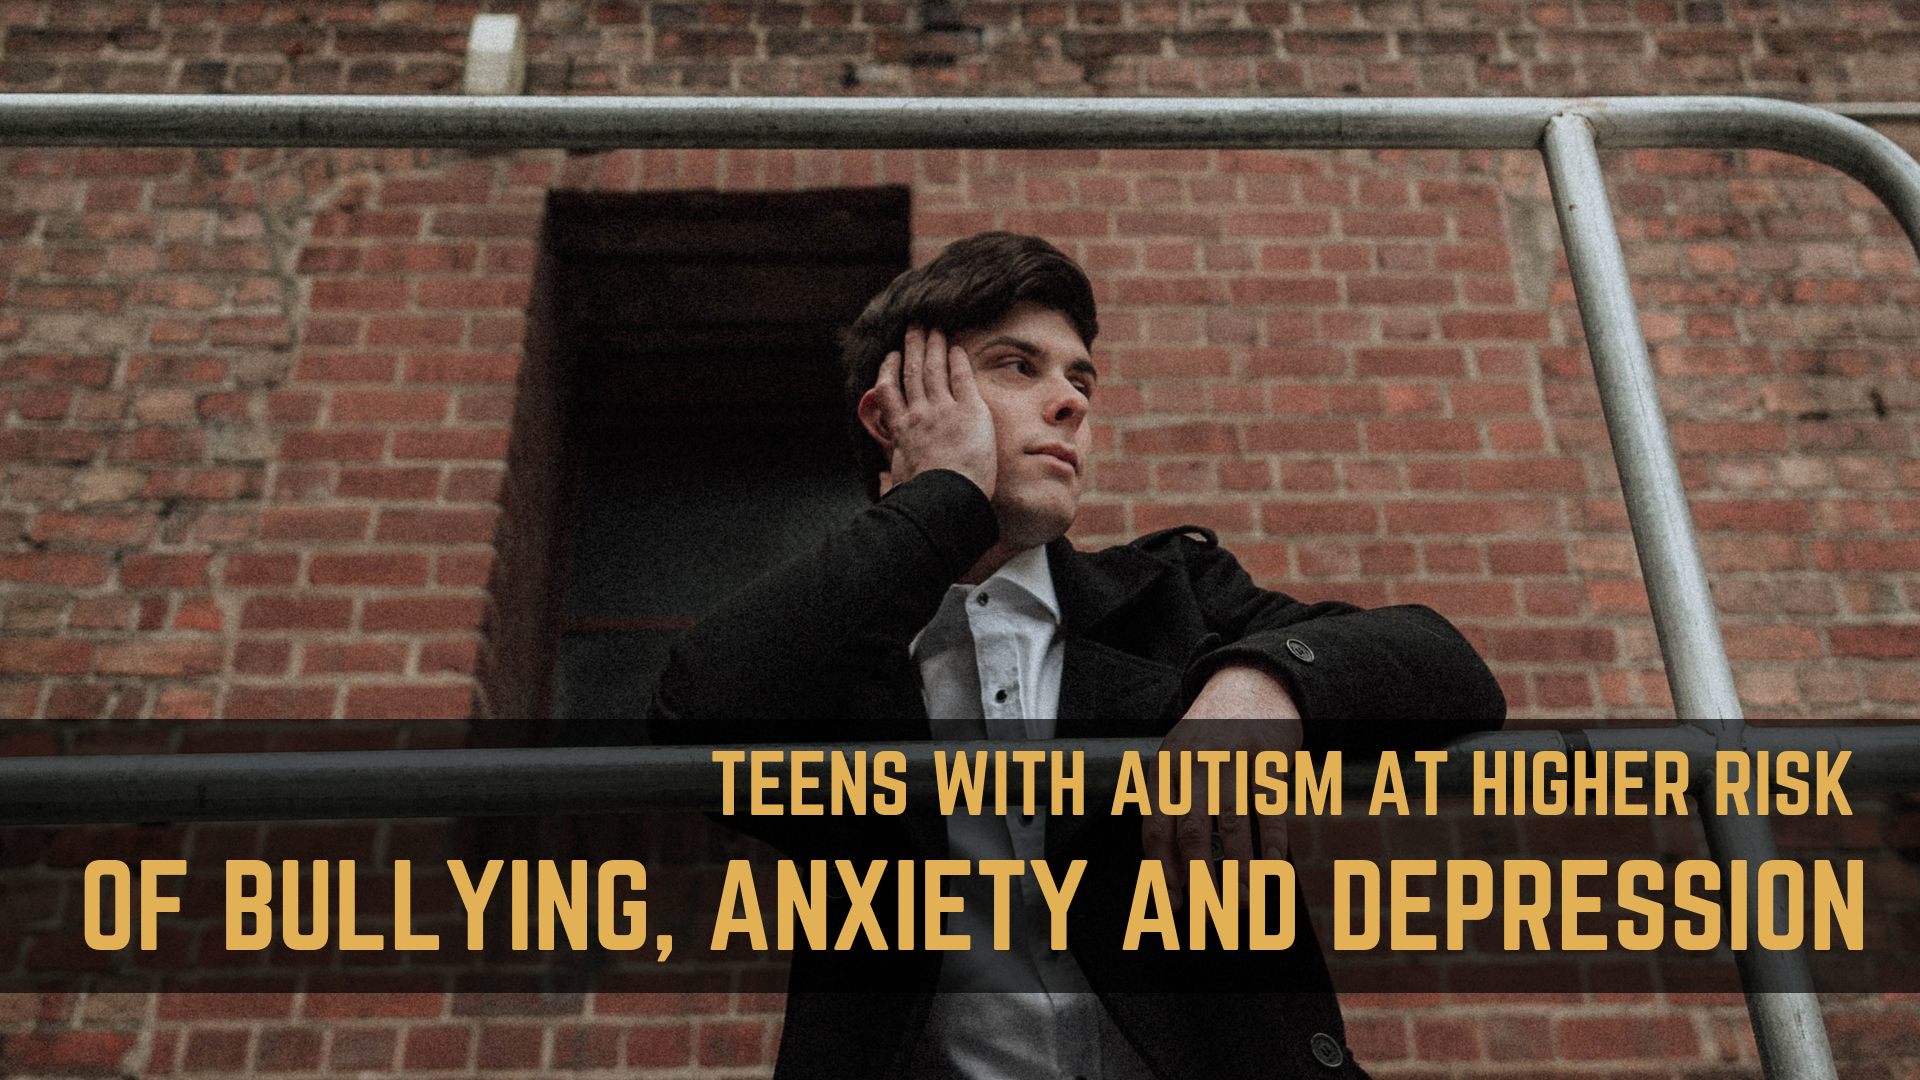 Why teens with Autism Spectrum Disorder are at higher risk of bullying, anxiety and depression